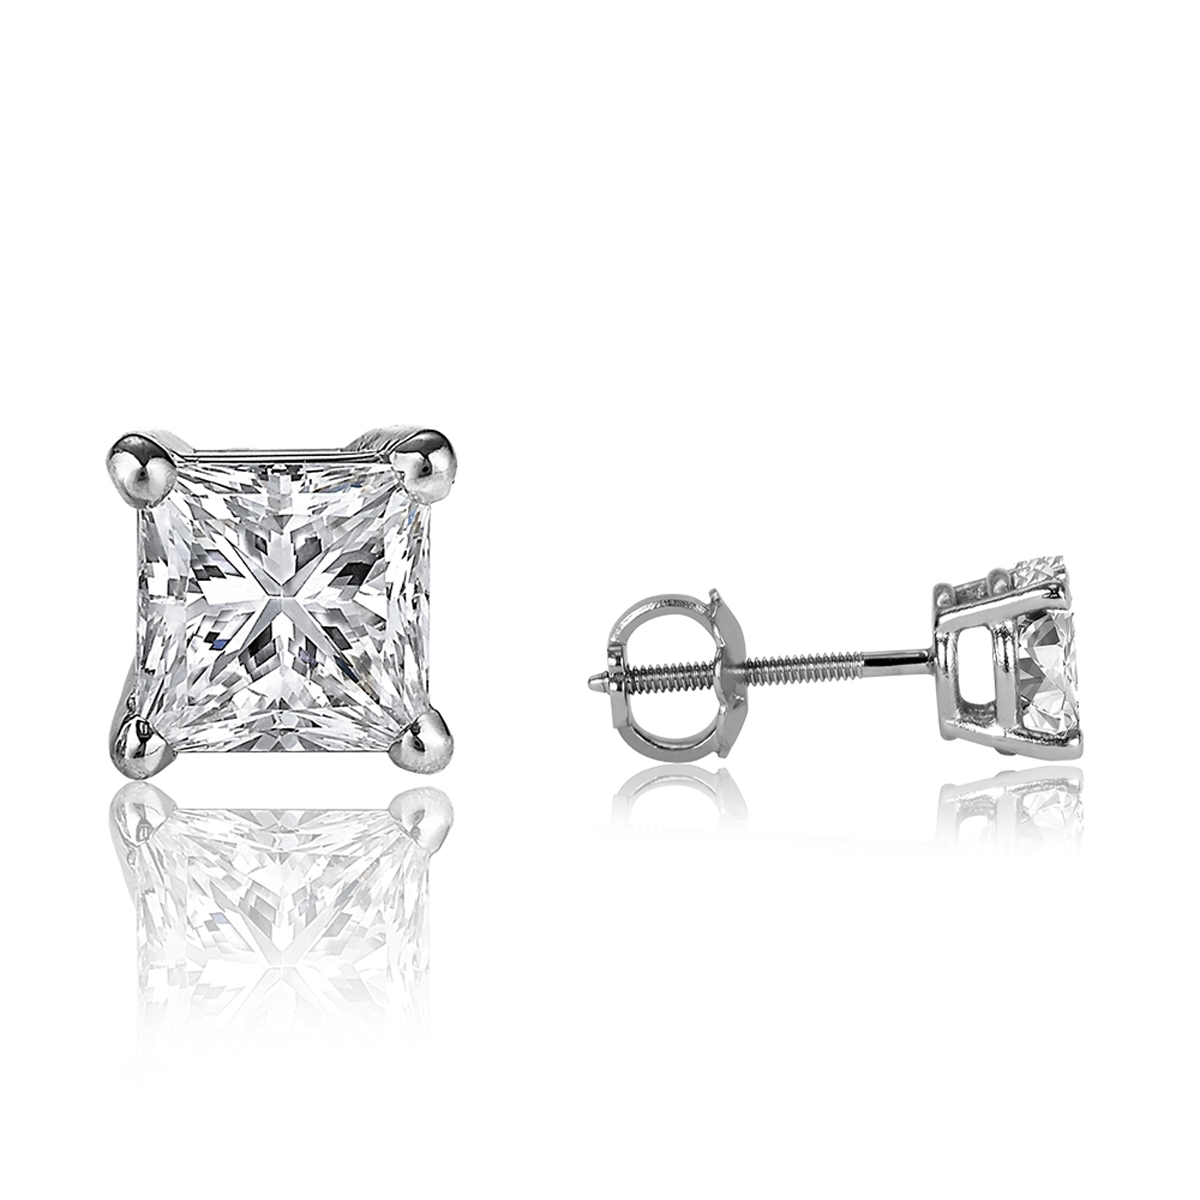 1 2 Carat Princess Cut Diamond Earrings Actual Size